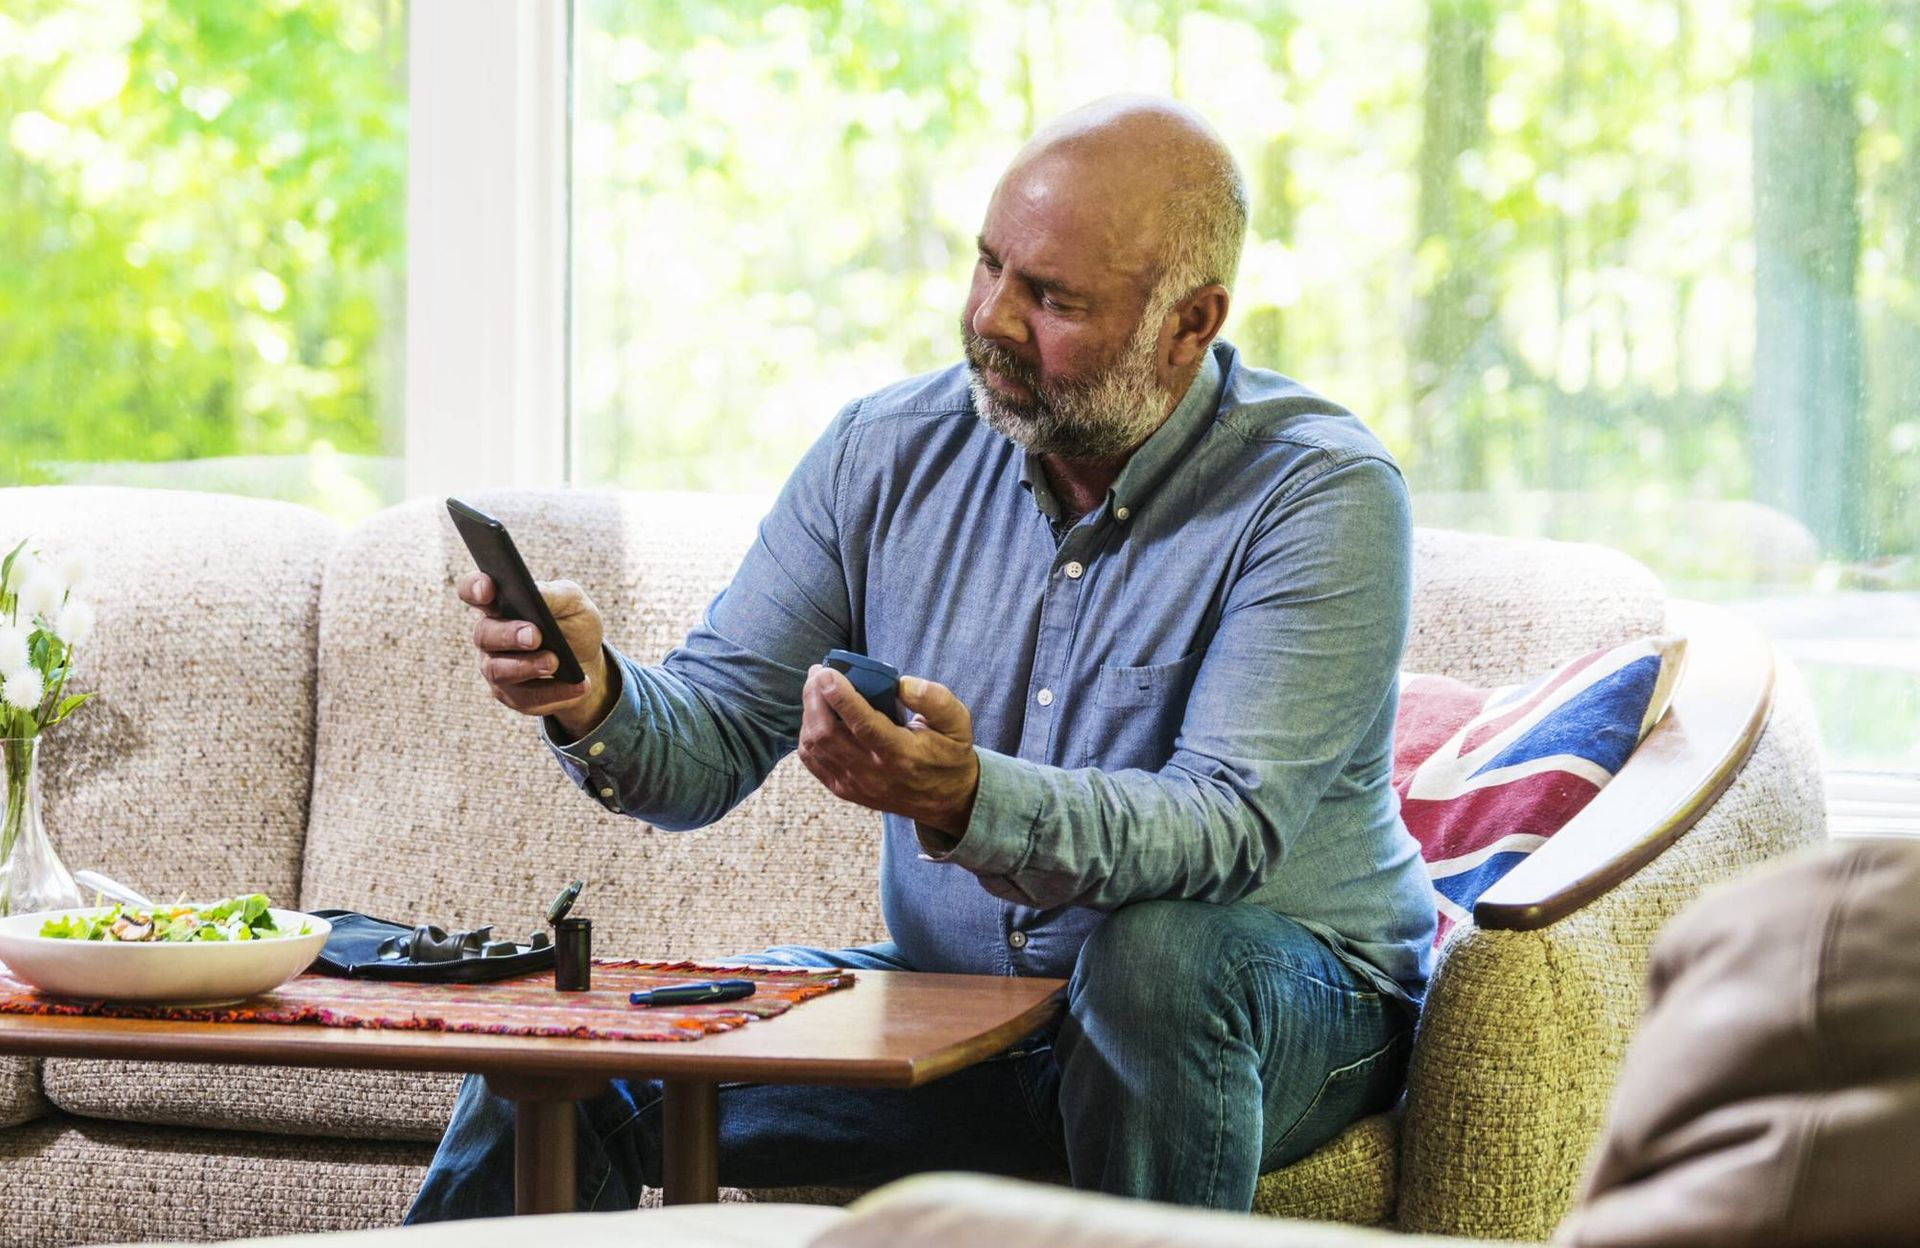 """Mature diabetic man testing his blood sugar and using a smartphone, """"How Can I Manage My Diabetes?"""""""